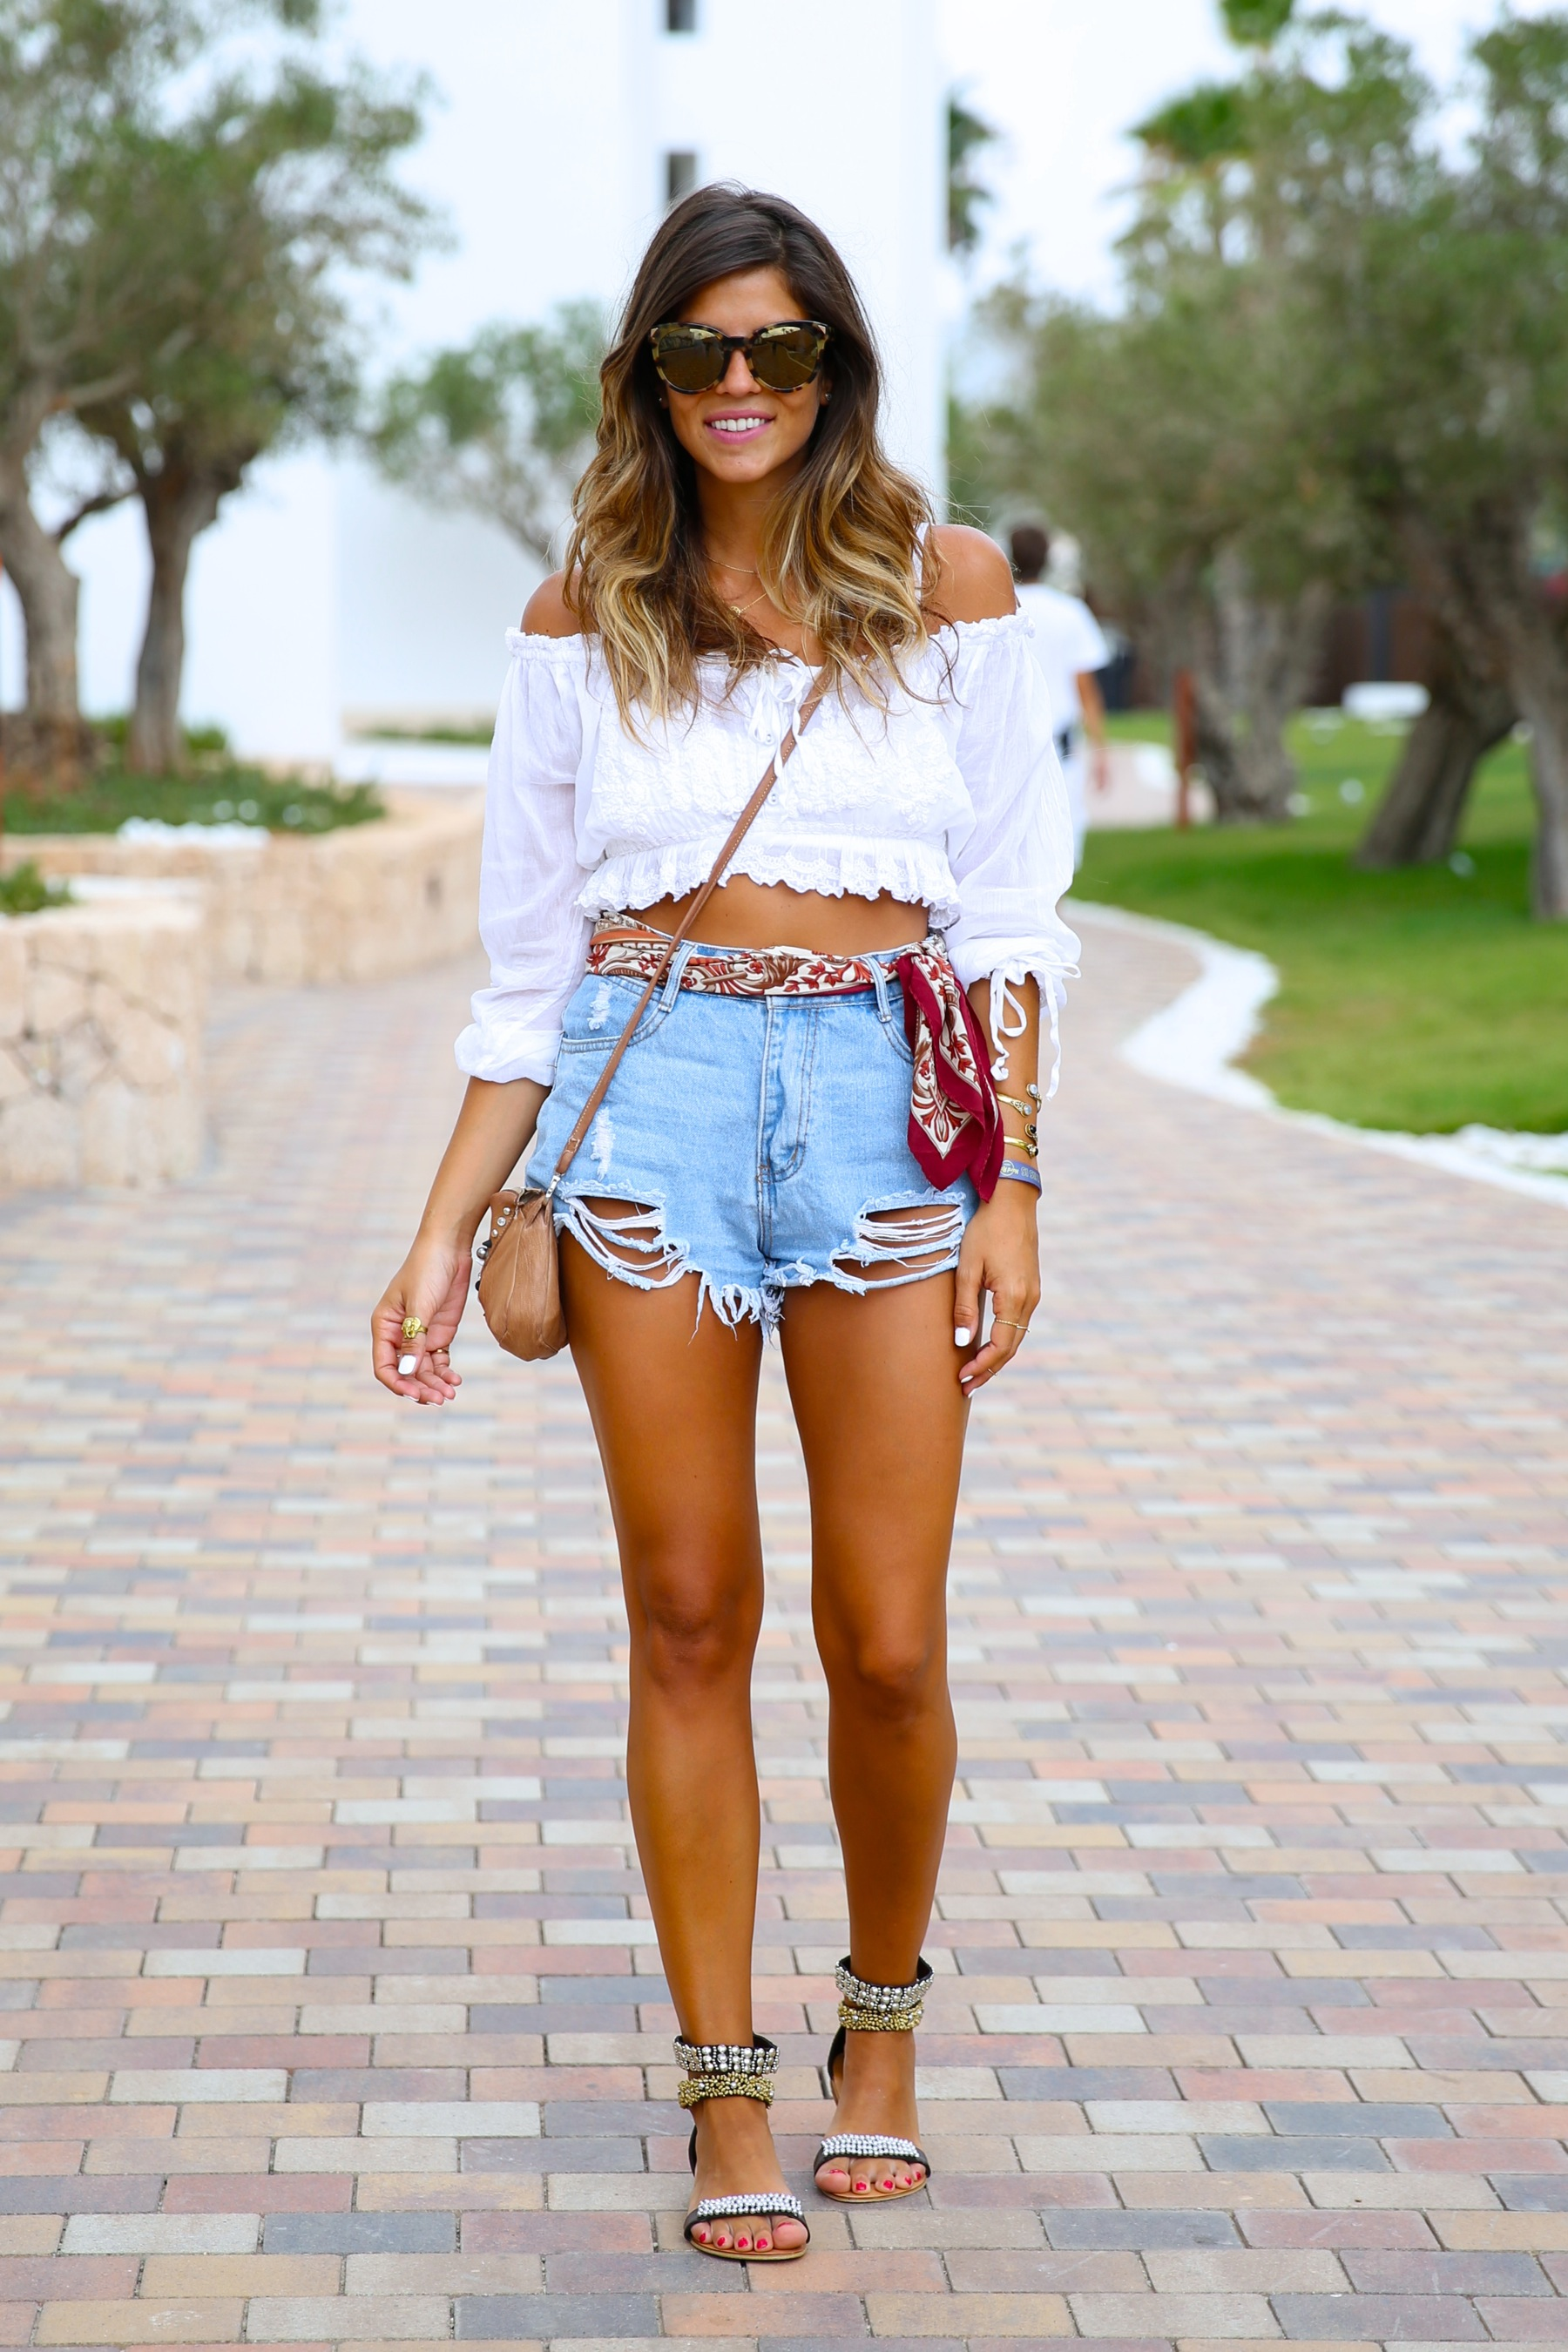 trendy_taste-look-outfit-street_style-ootd-blog-blogger-fashion_spain-moda_españa-hard_rock_hotel-ibiza-palladium-shorts_vaqueros-denim_shorts-boho-verano-summer-hippie-pañuelo-23